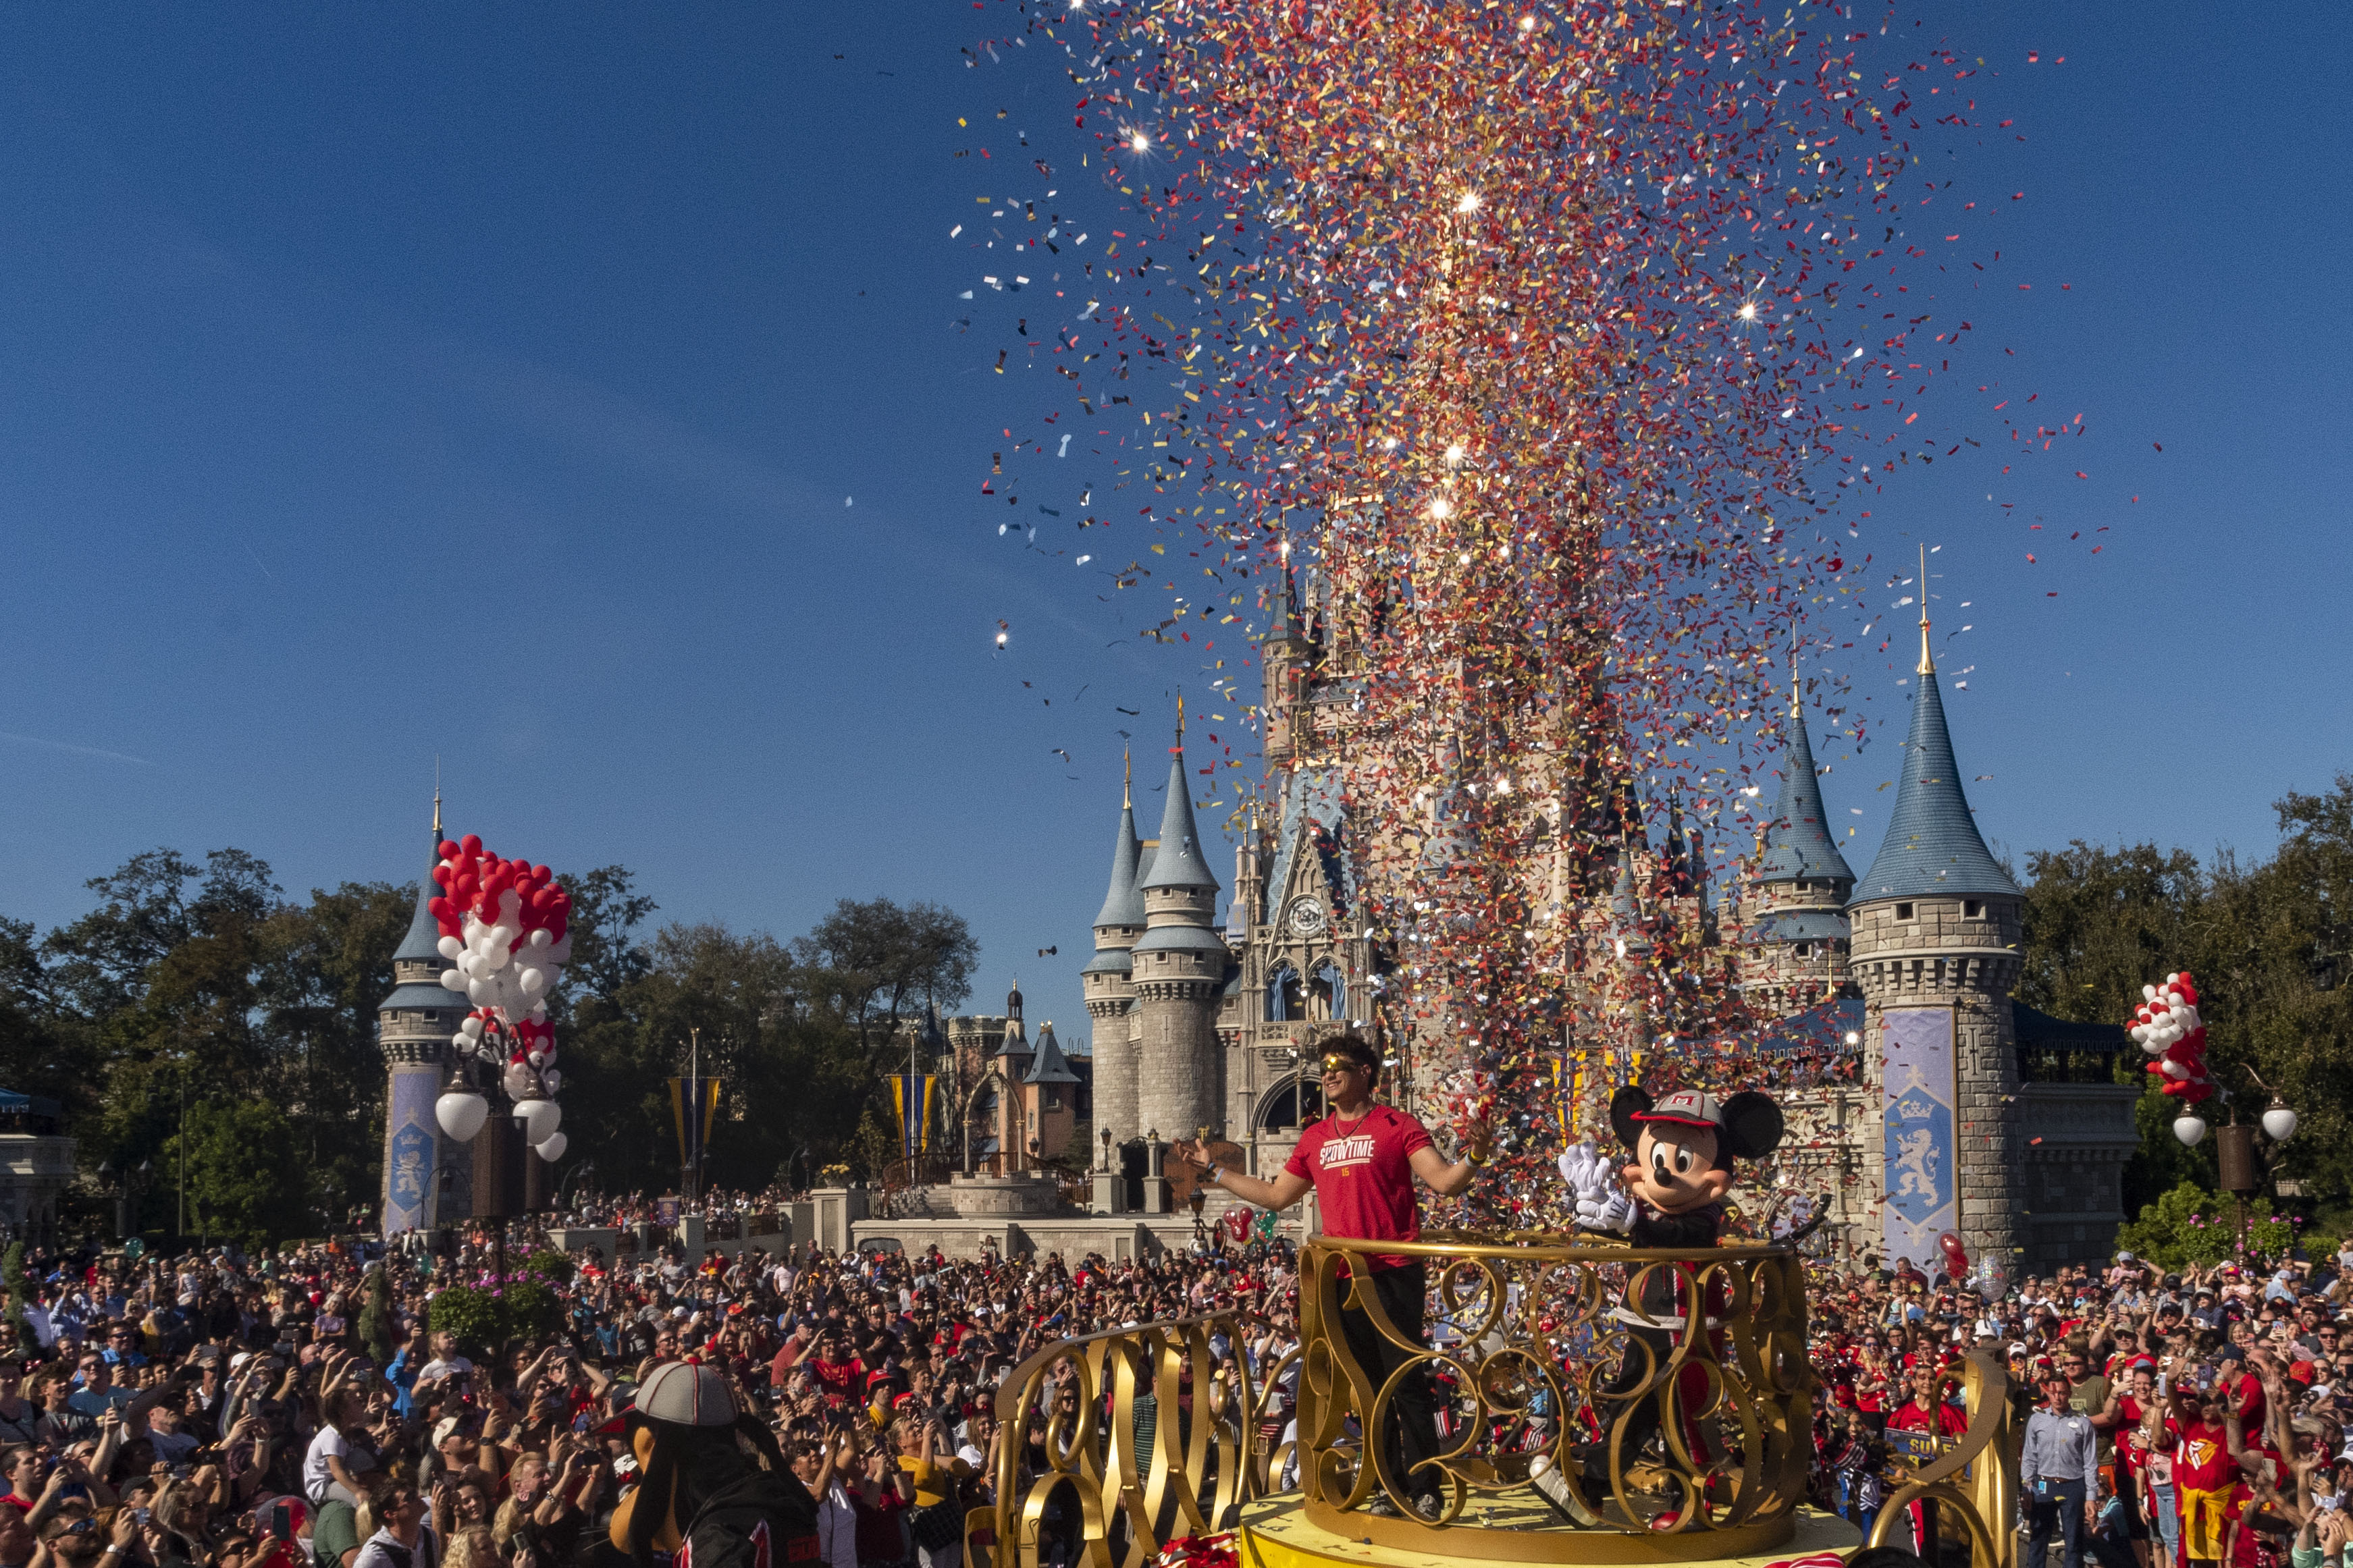 Super Bowl MVP Patrick Mahomes Victory Parade at Walt Disney World Resort